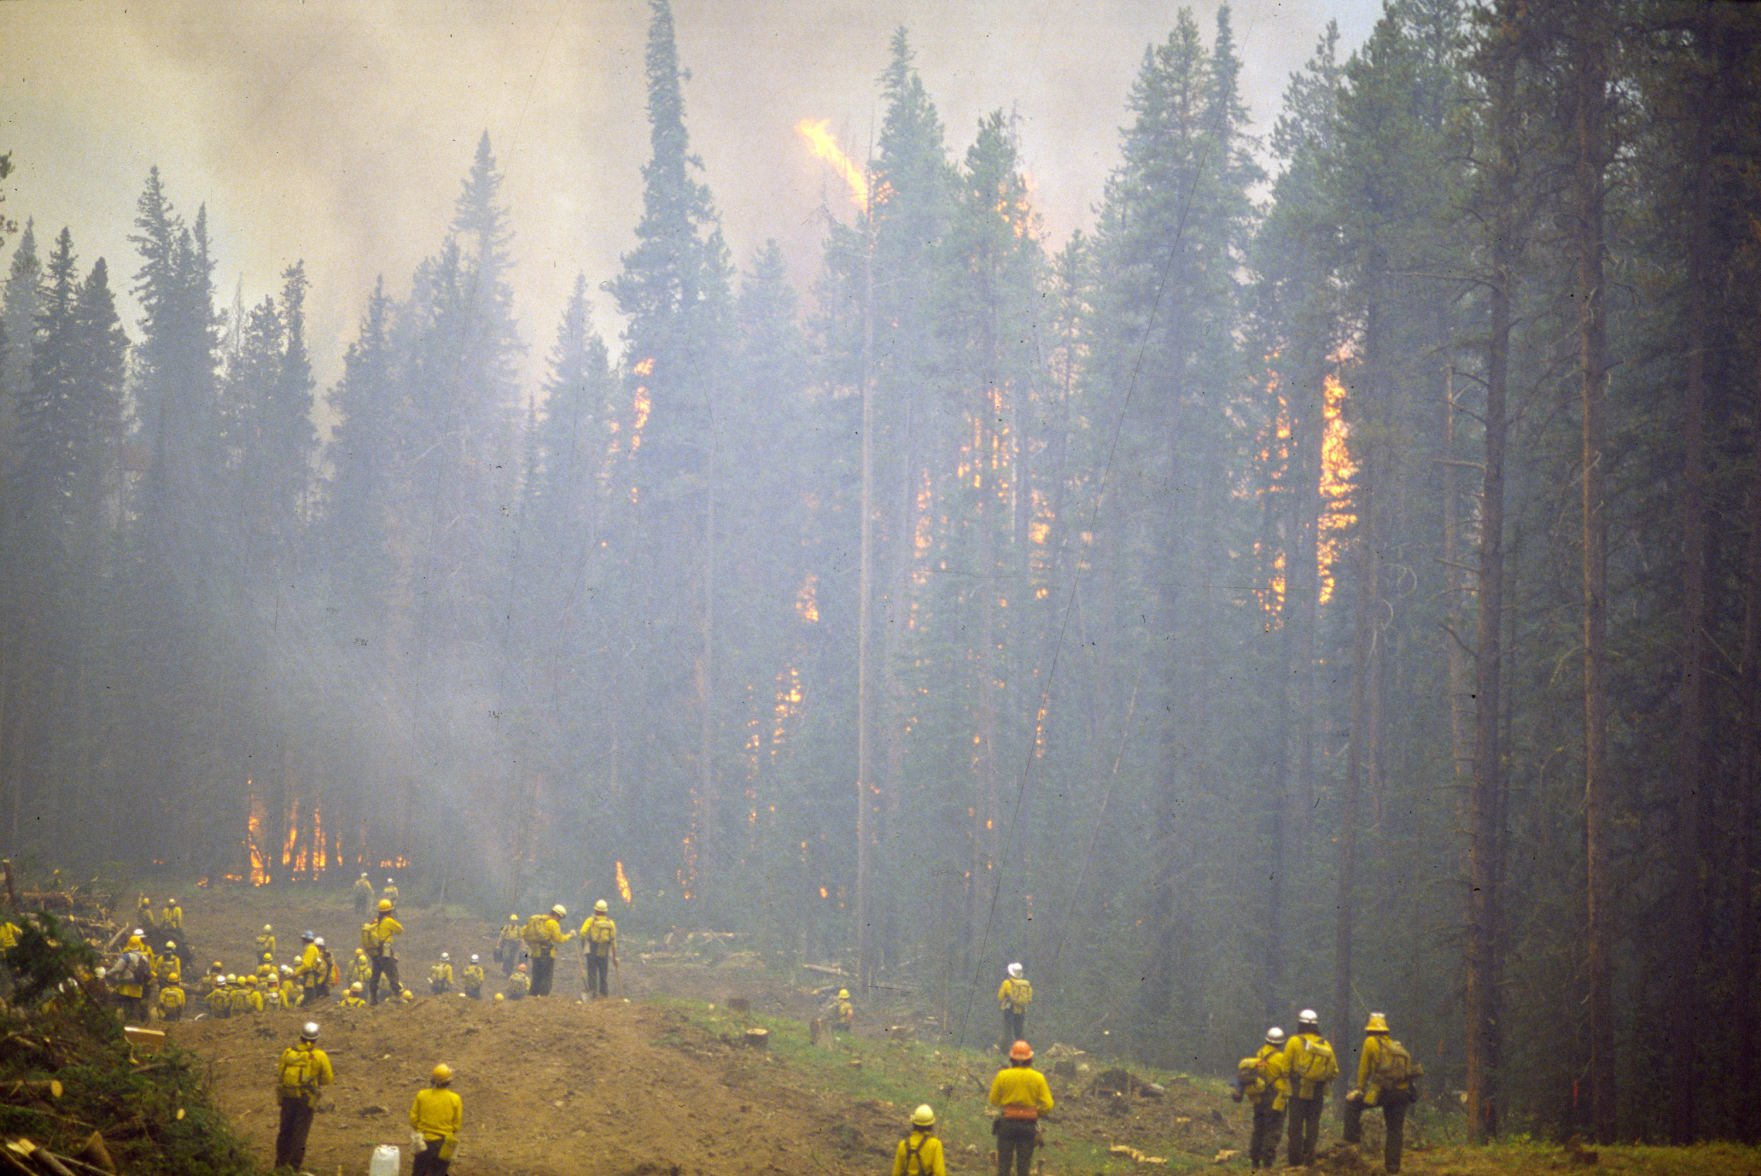 Firefighting has seen many changes since the 1988 Yellowstone fires